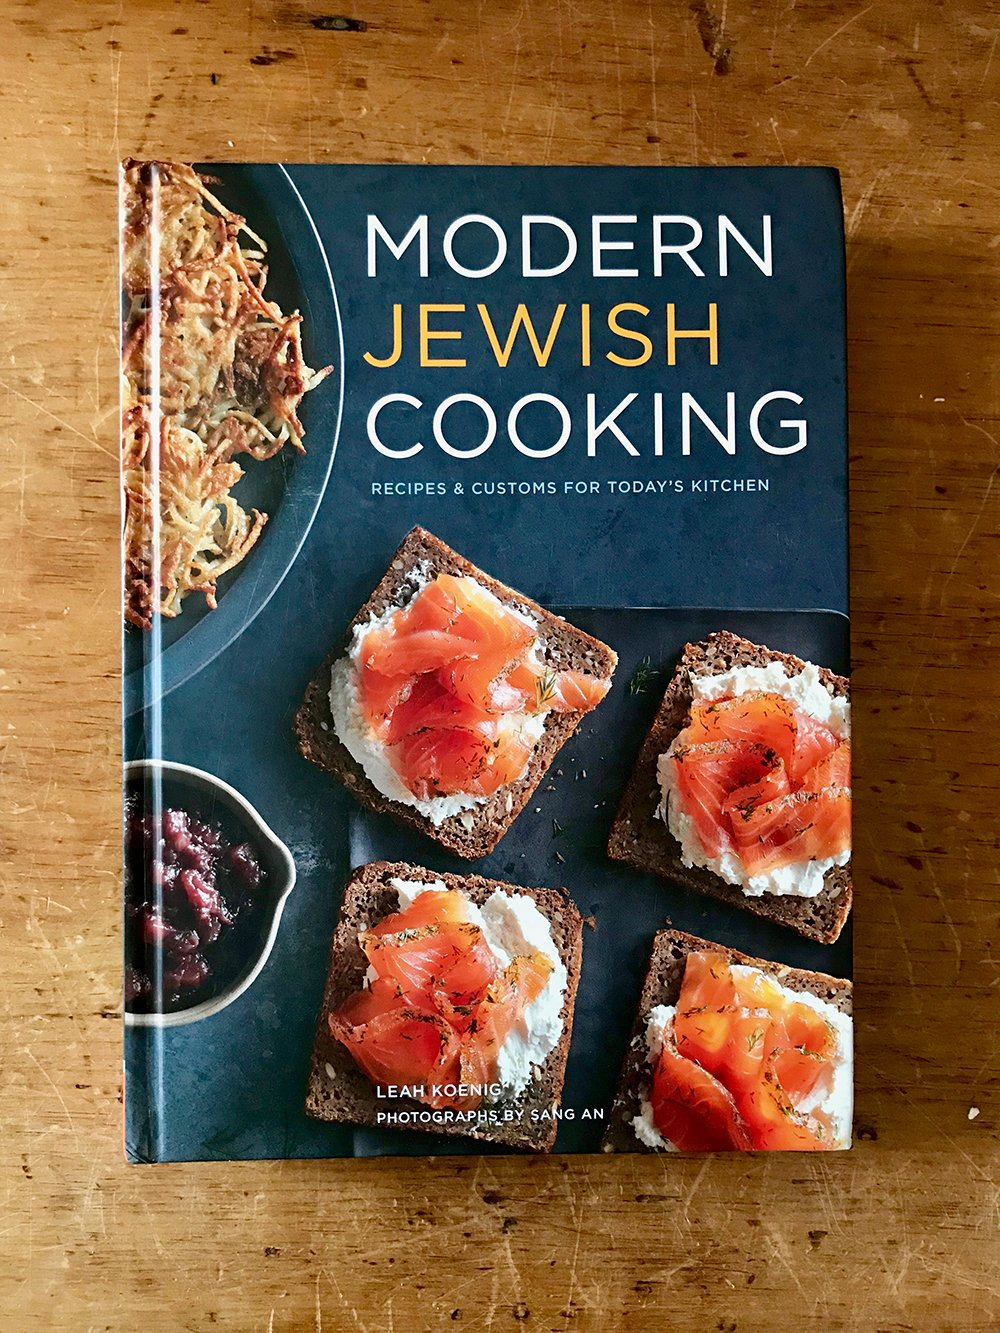 9 Cookbooks That Earn Their Keep